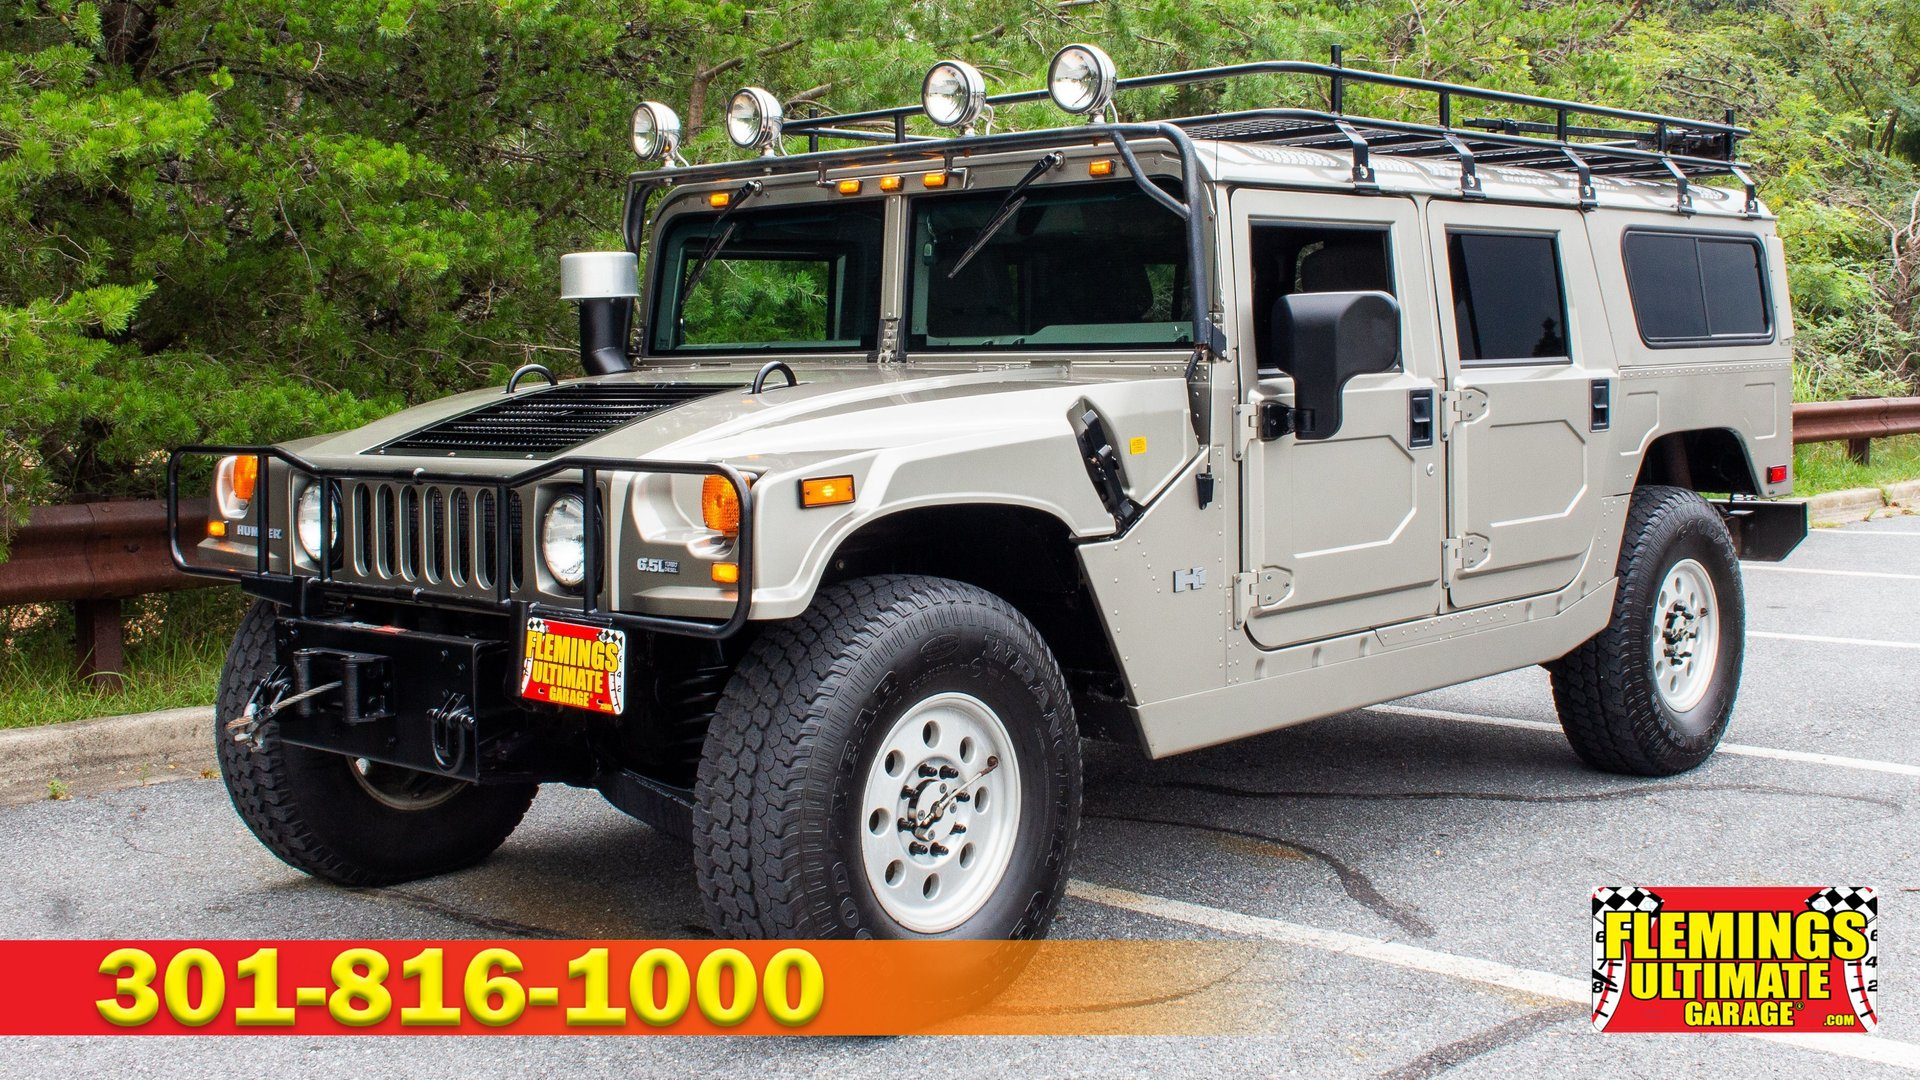 8 Hummer H8 for sale #874665 | Motorious | 2002 hummer h1 for sale